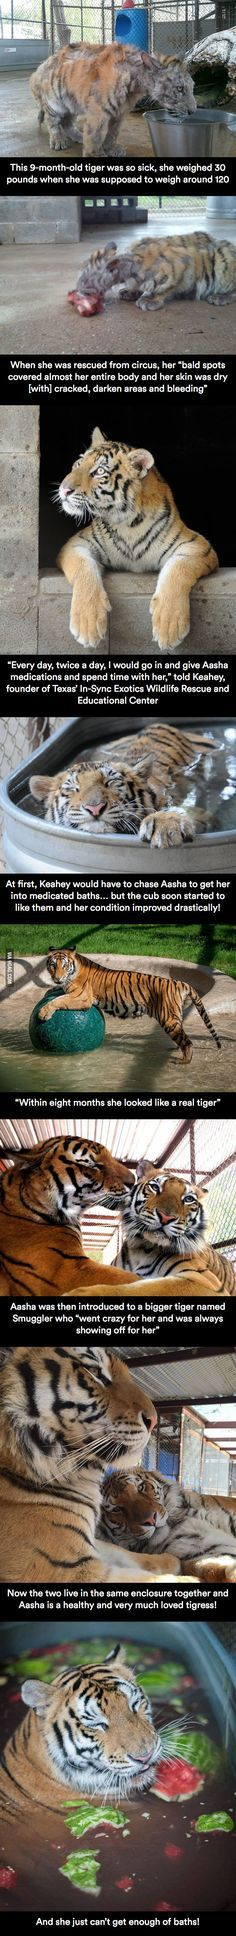 Sick Tiger Cub Gets Rescued From Circus, Makes Incredible Recovery And Finds…